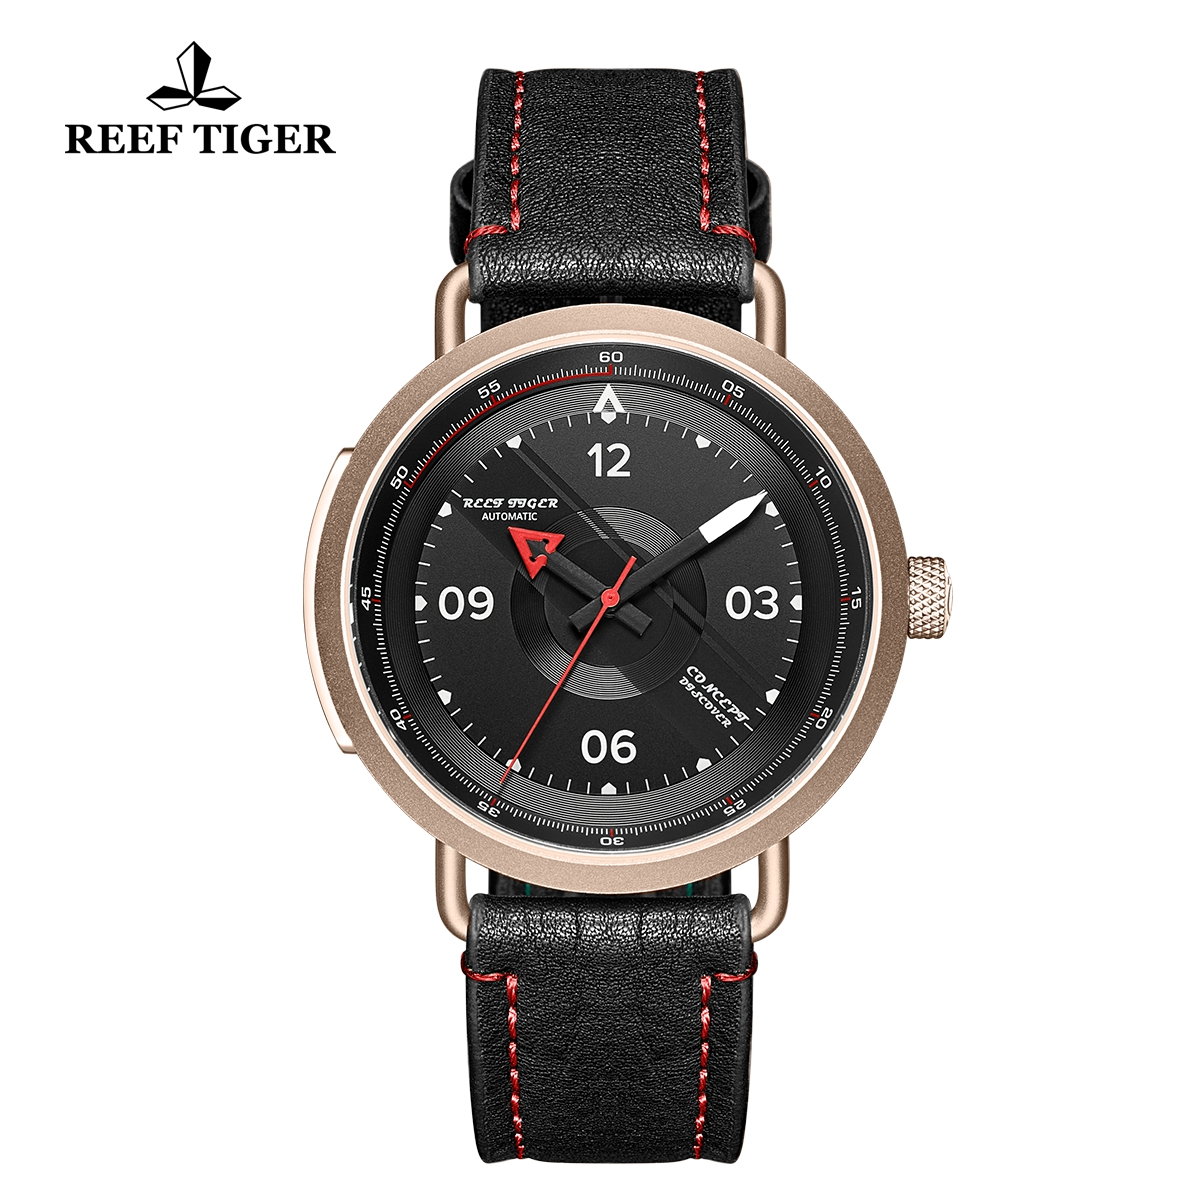 Reef Tiger Limited Edition Discover Mens Rose Gold Black Dial Leather Strap Red Pointer Automatic Watch RGA9055-PBR